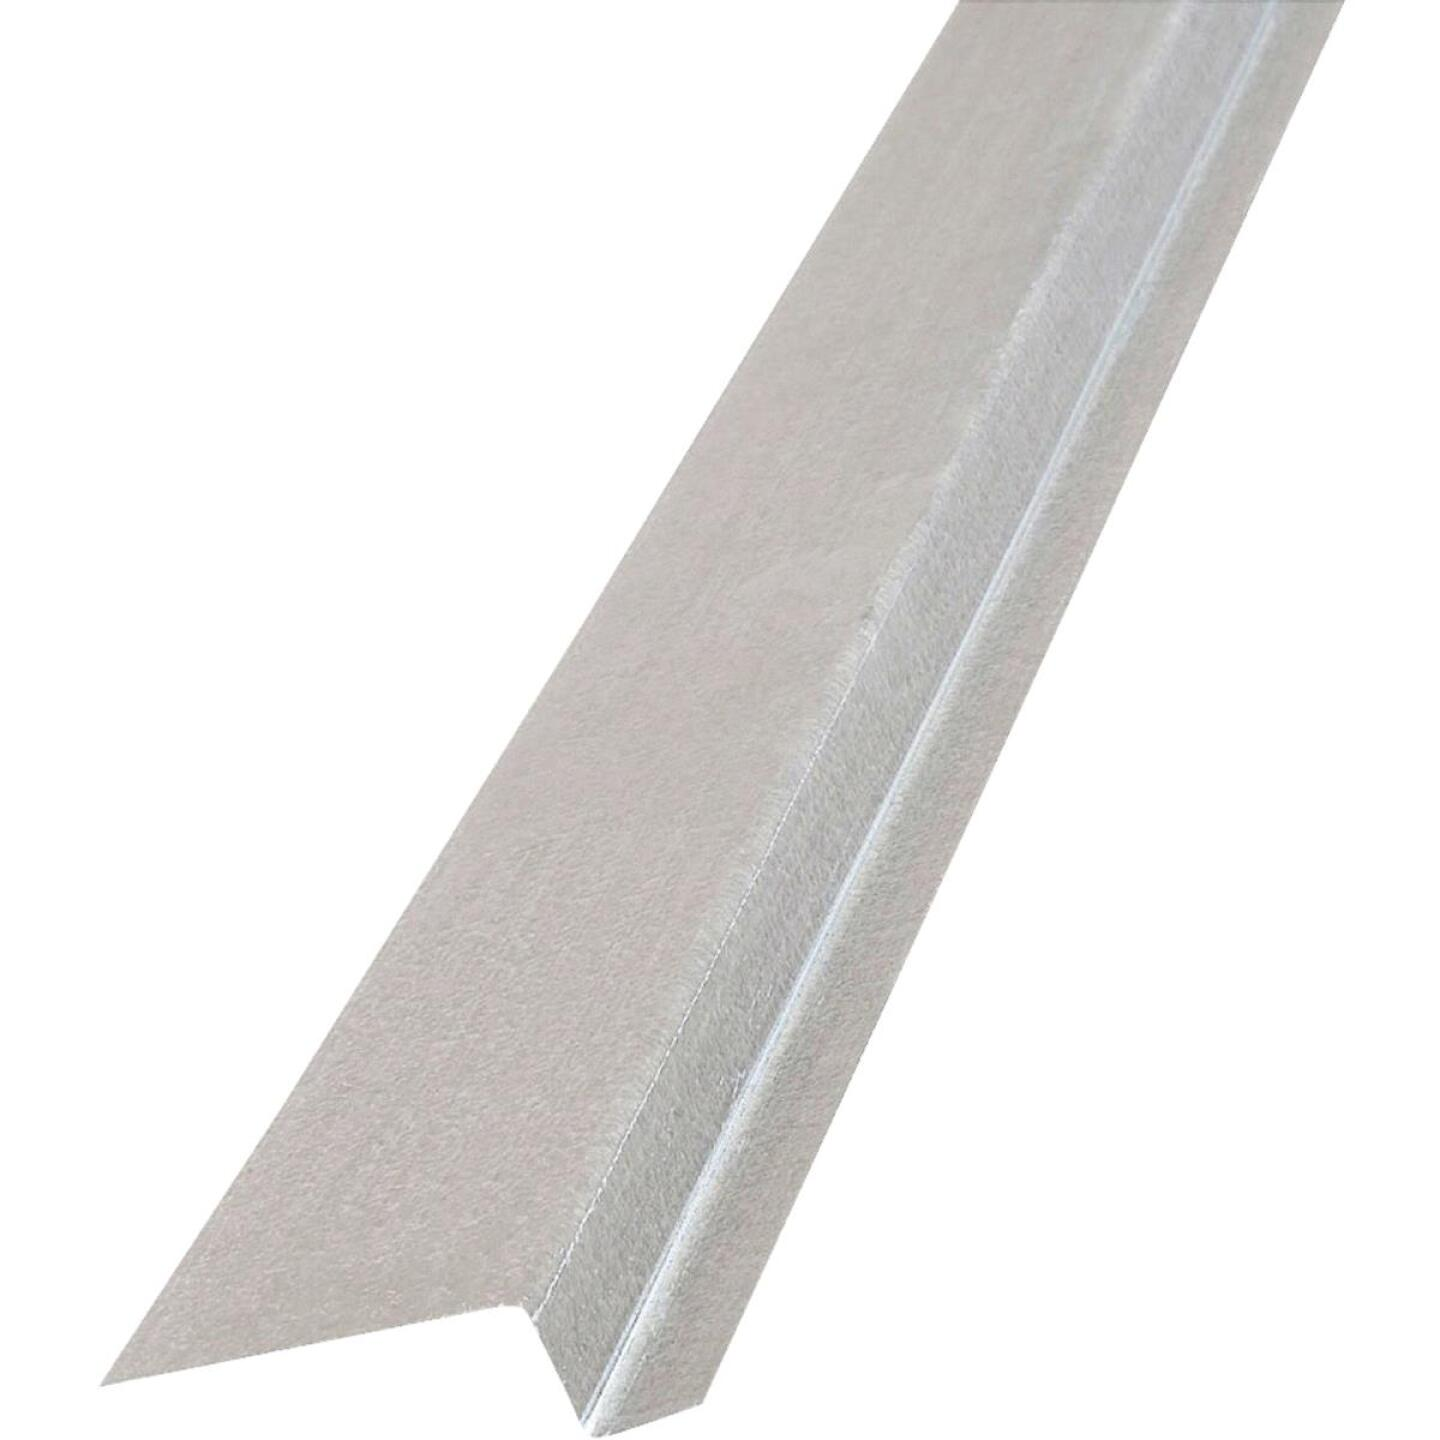 NorWesco 3/8 In. x 5/8 In. x 2 In. x 10 Ft. Mill Galvanized Ply Edge Z-Style Flashing Image 1